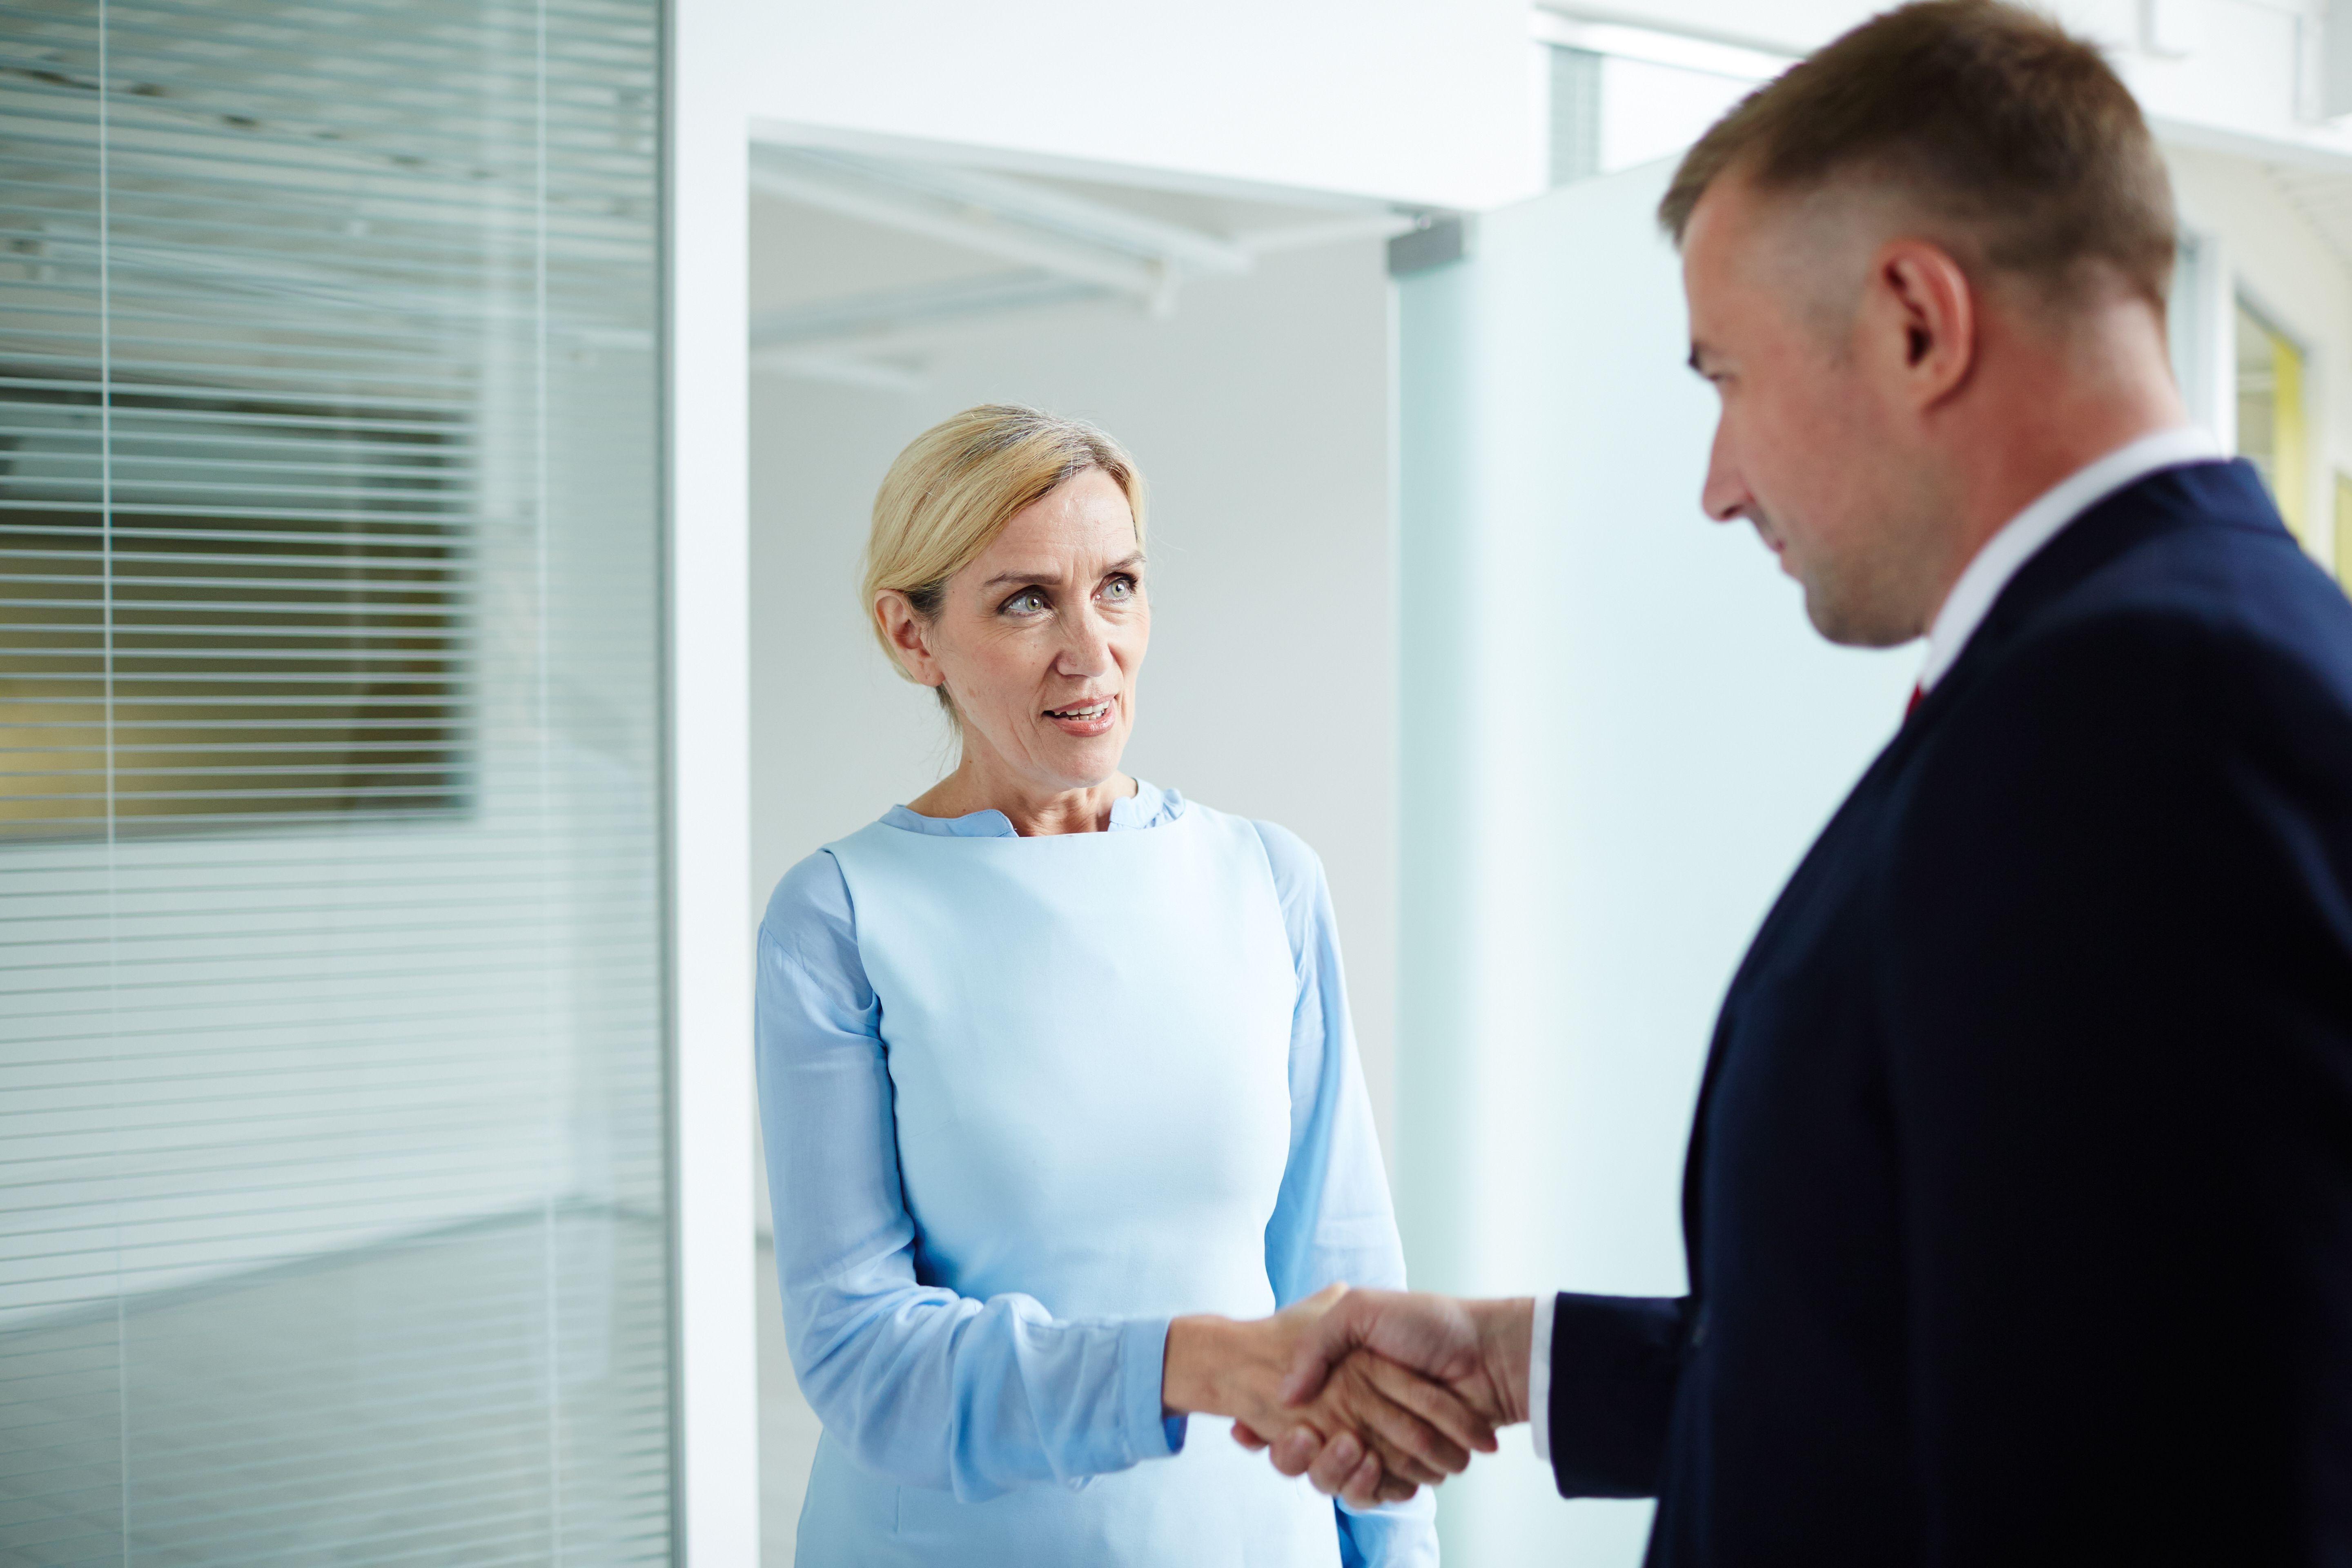 A man in suit shaking hand with a woman